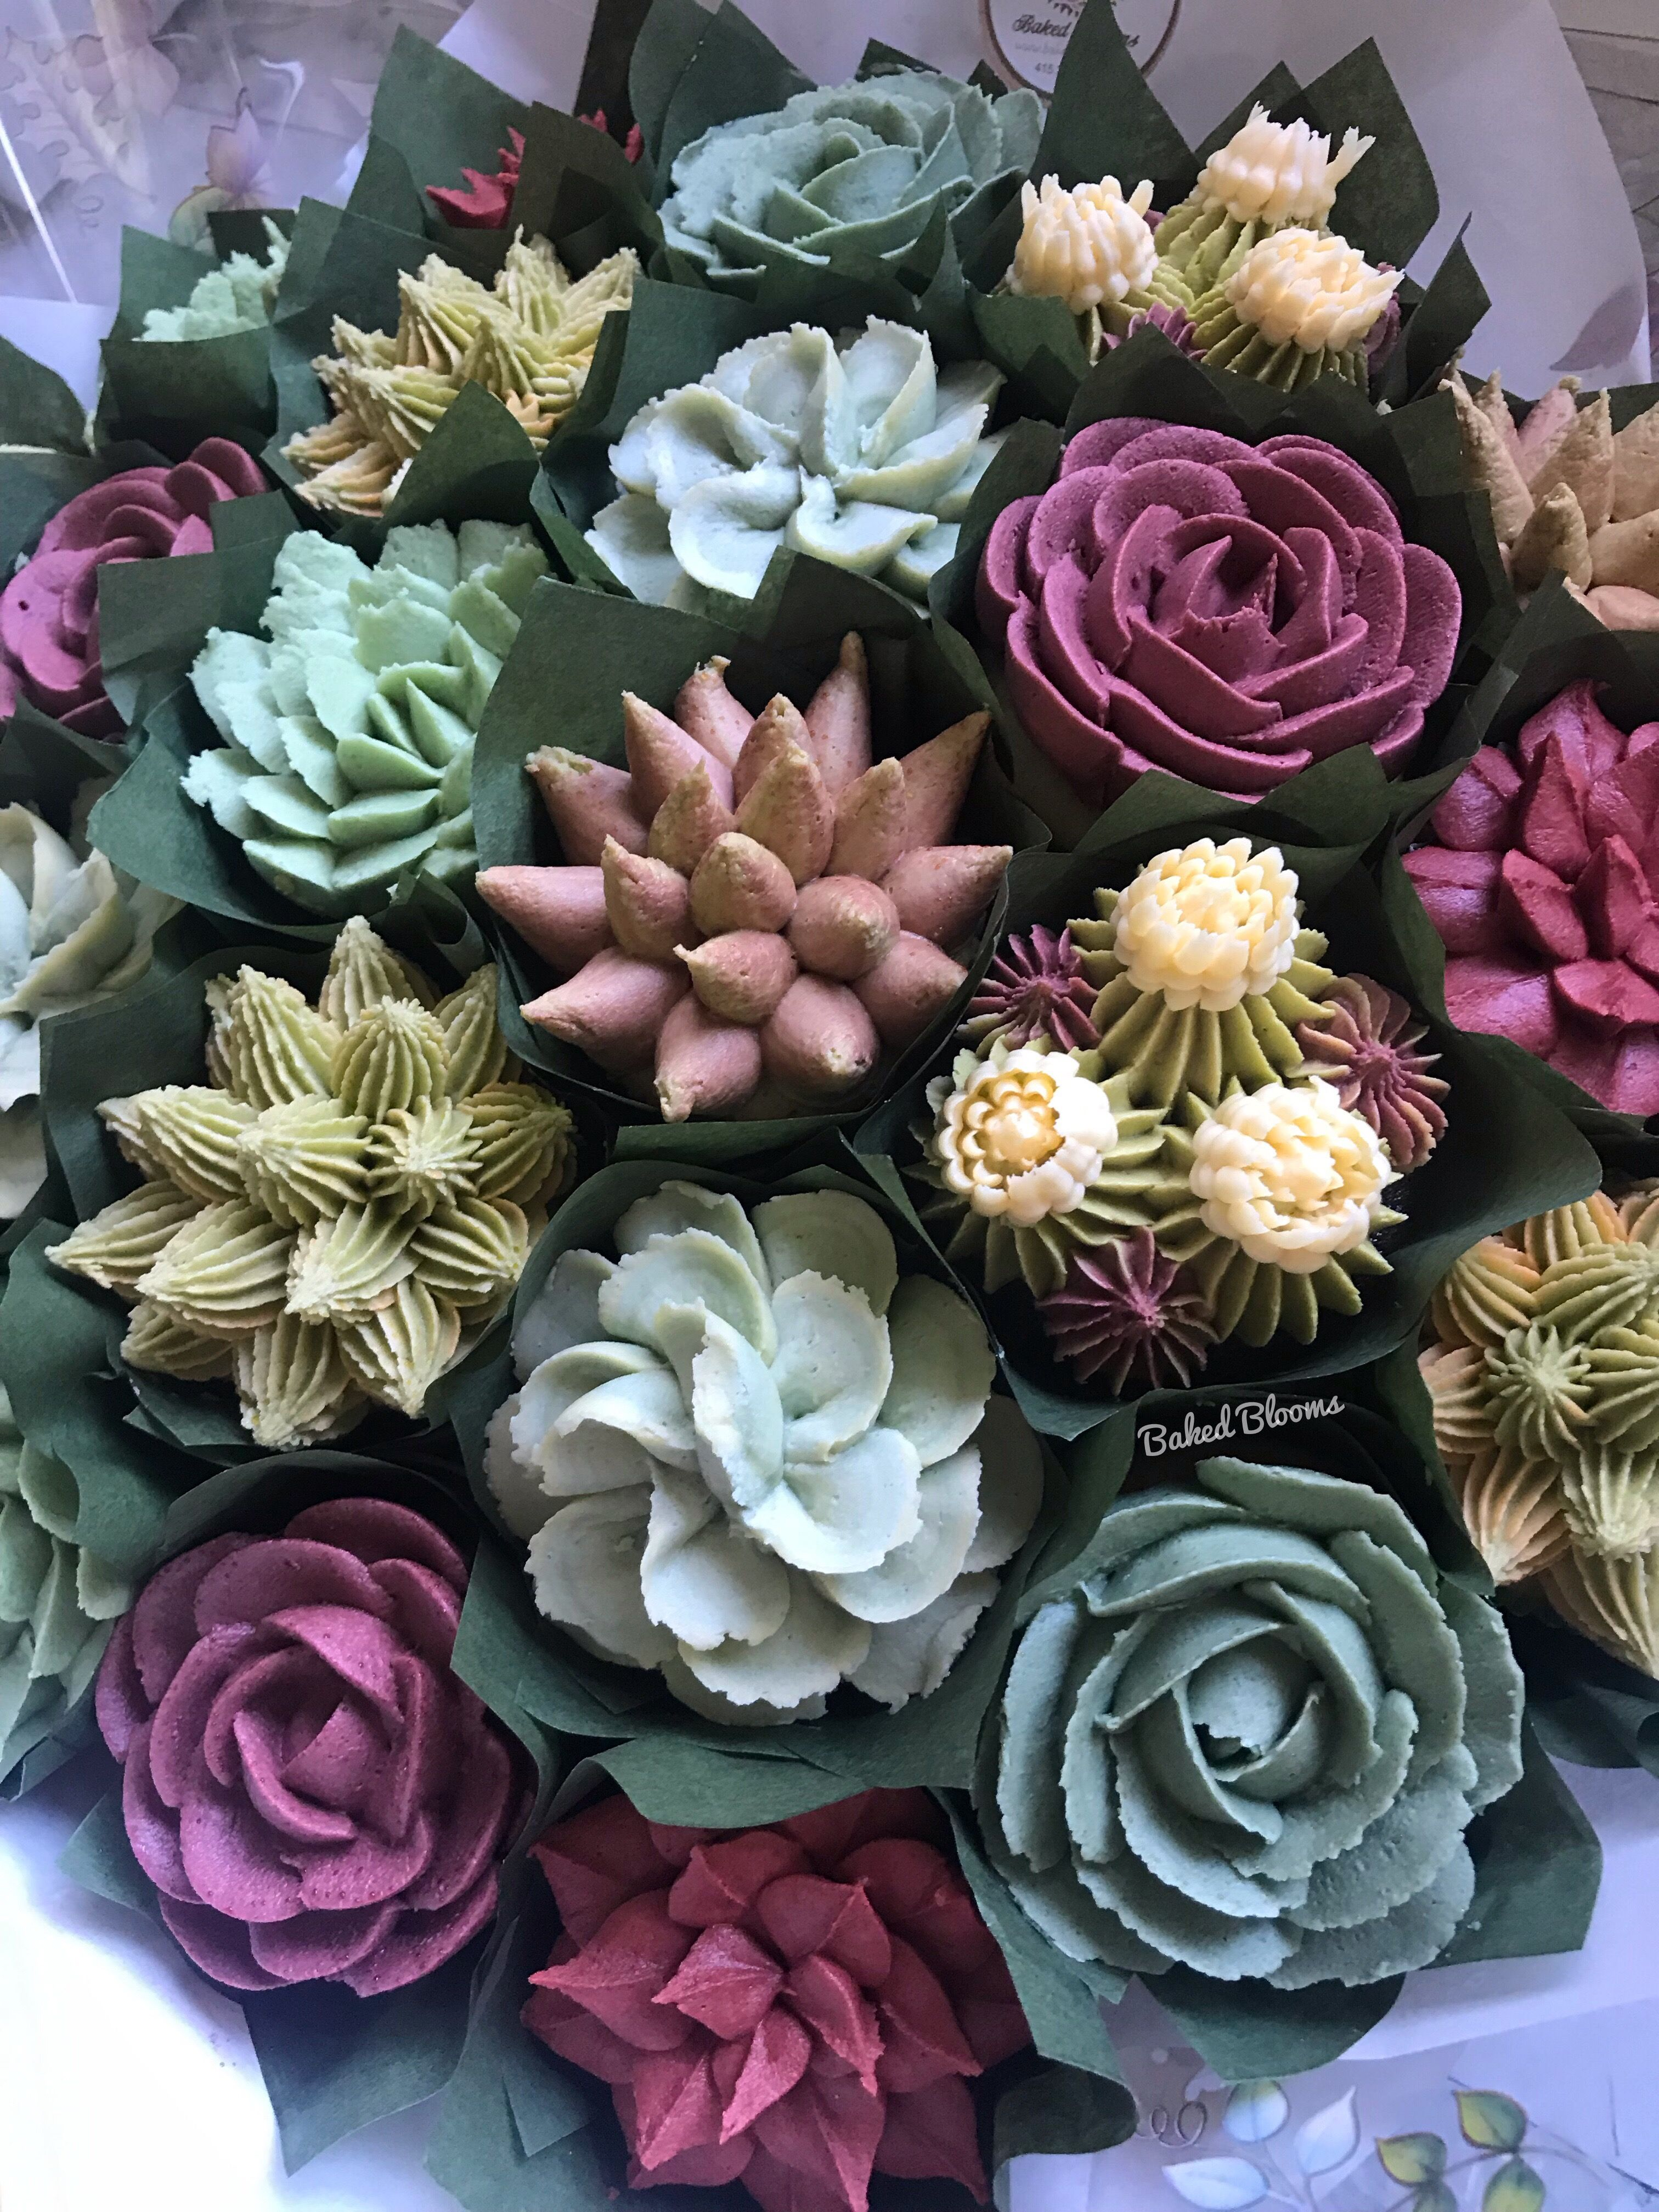 bakedblooms Food Network Winner in 2020 (With images